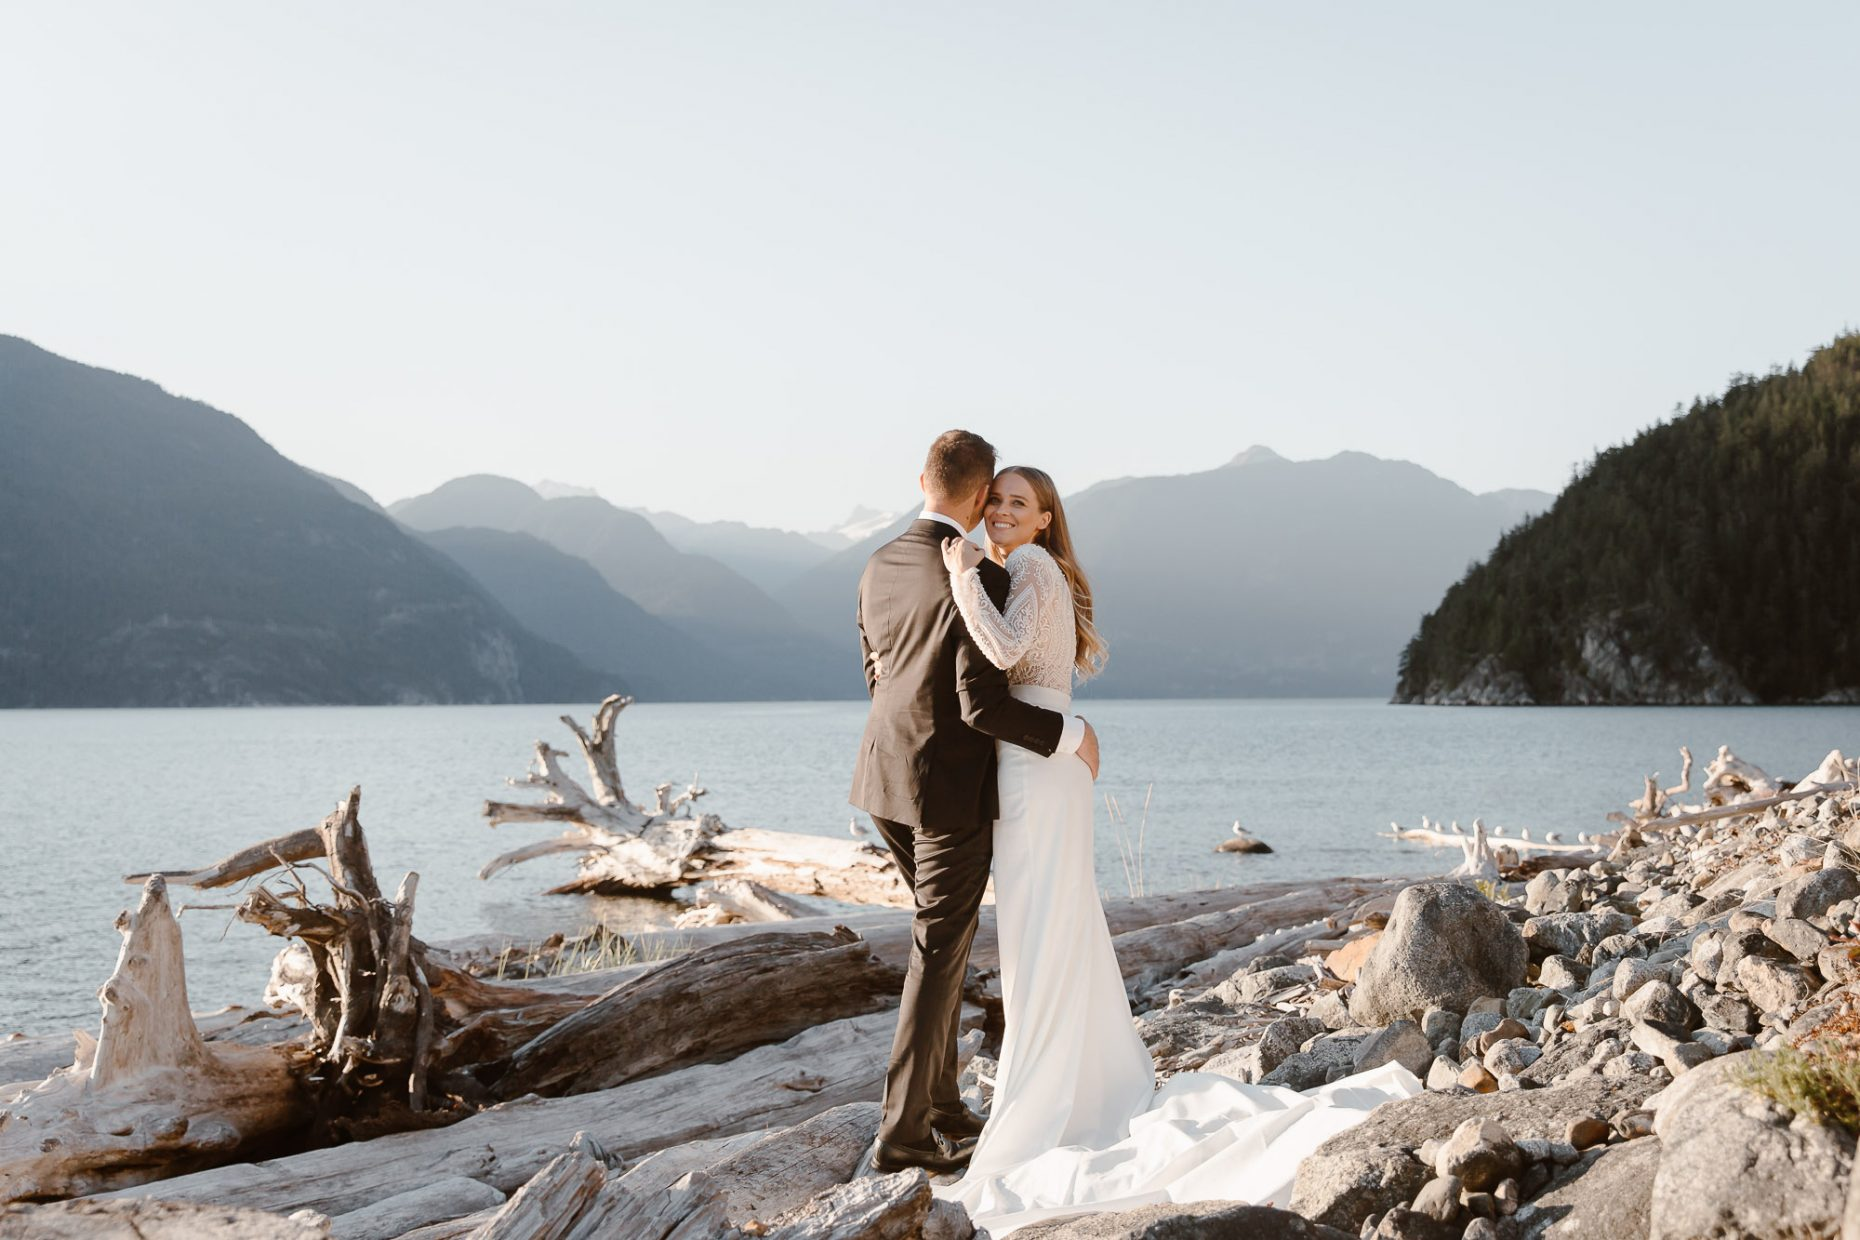 Bride and groom with mountain views